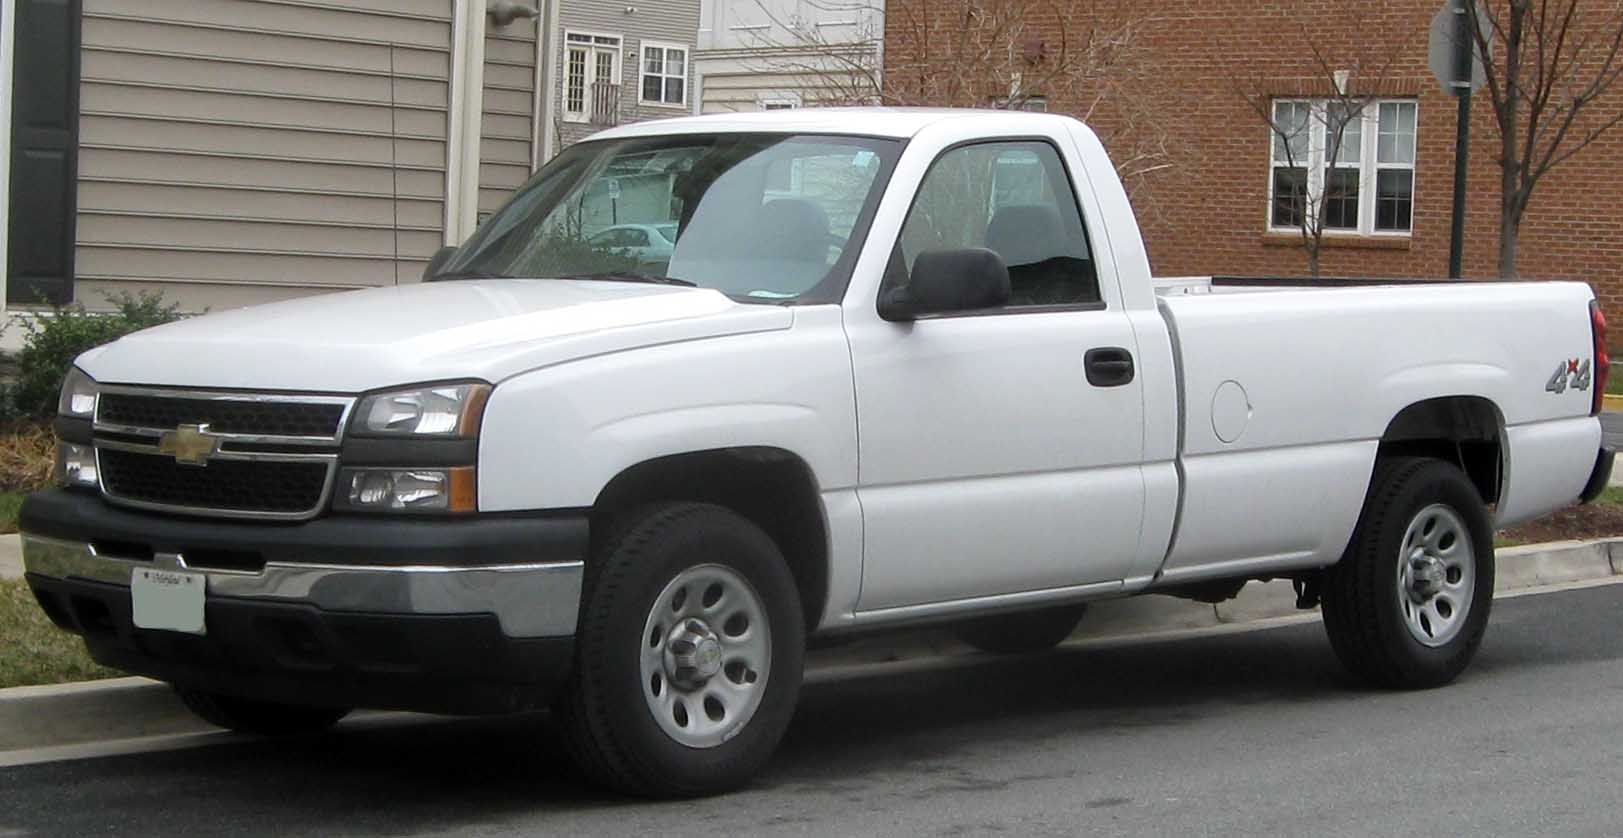 2006 chevy 1500 regular cab google search vehicles for me and the boys pinterest chevy 1500 and chevy